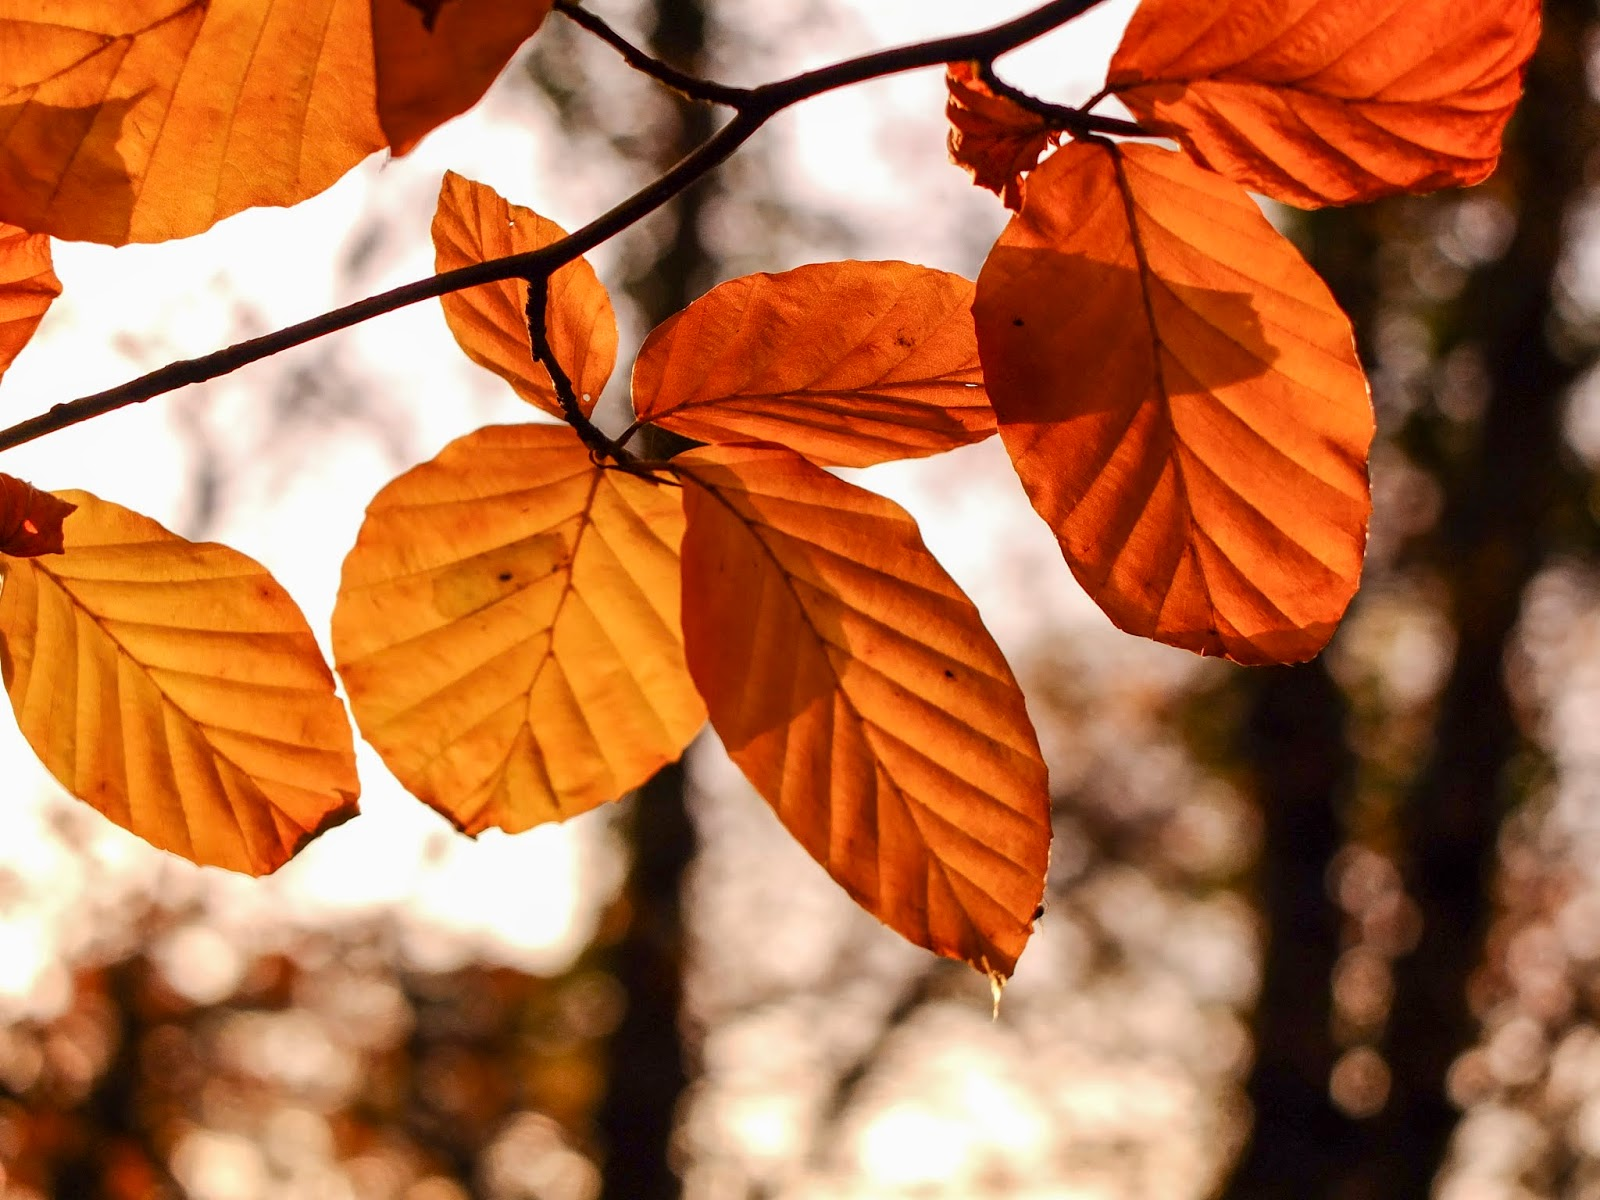 Sun light shining through orange leaves on tree branches in North County Cork.